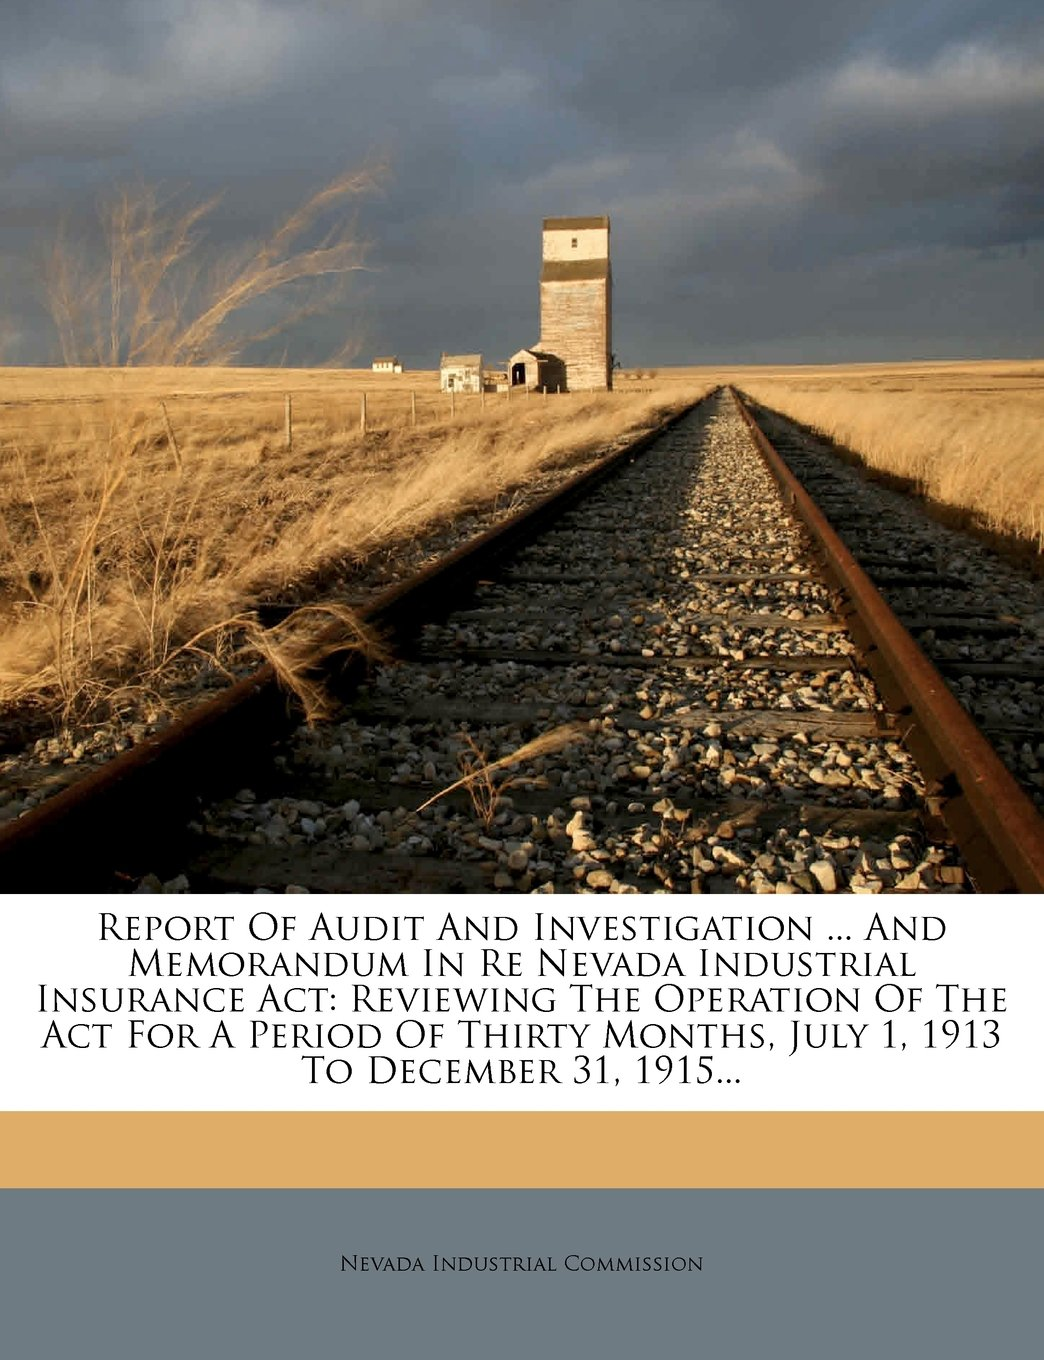 Report Of Audit And Investigation ... And Memorandum In Re Nevada Industrial Insurance Act: Reviewing The Operation Of The Act For A Period Of Thirty Months, July 1, 1913 To December 31, 1915... PDF